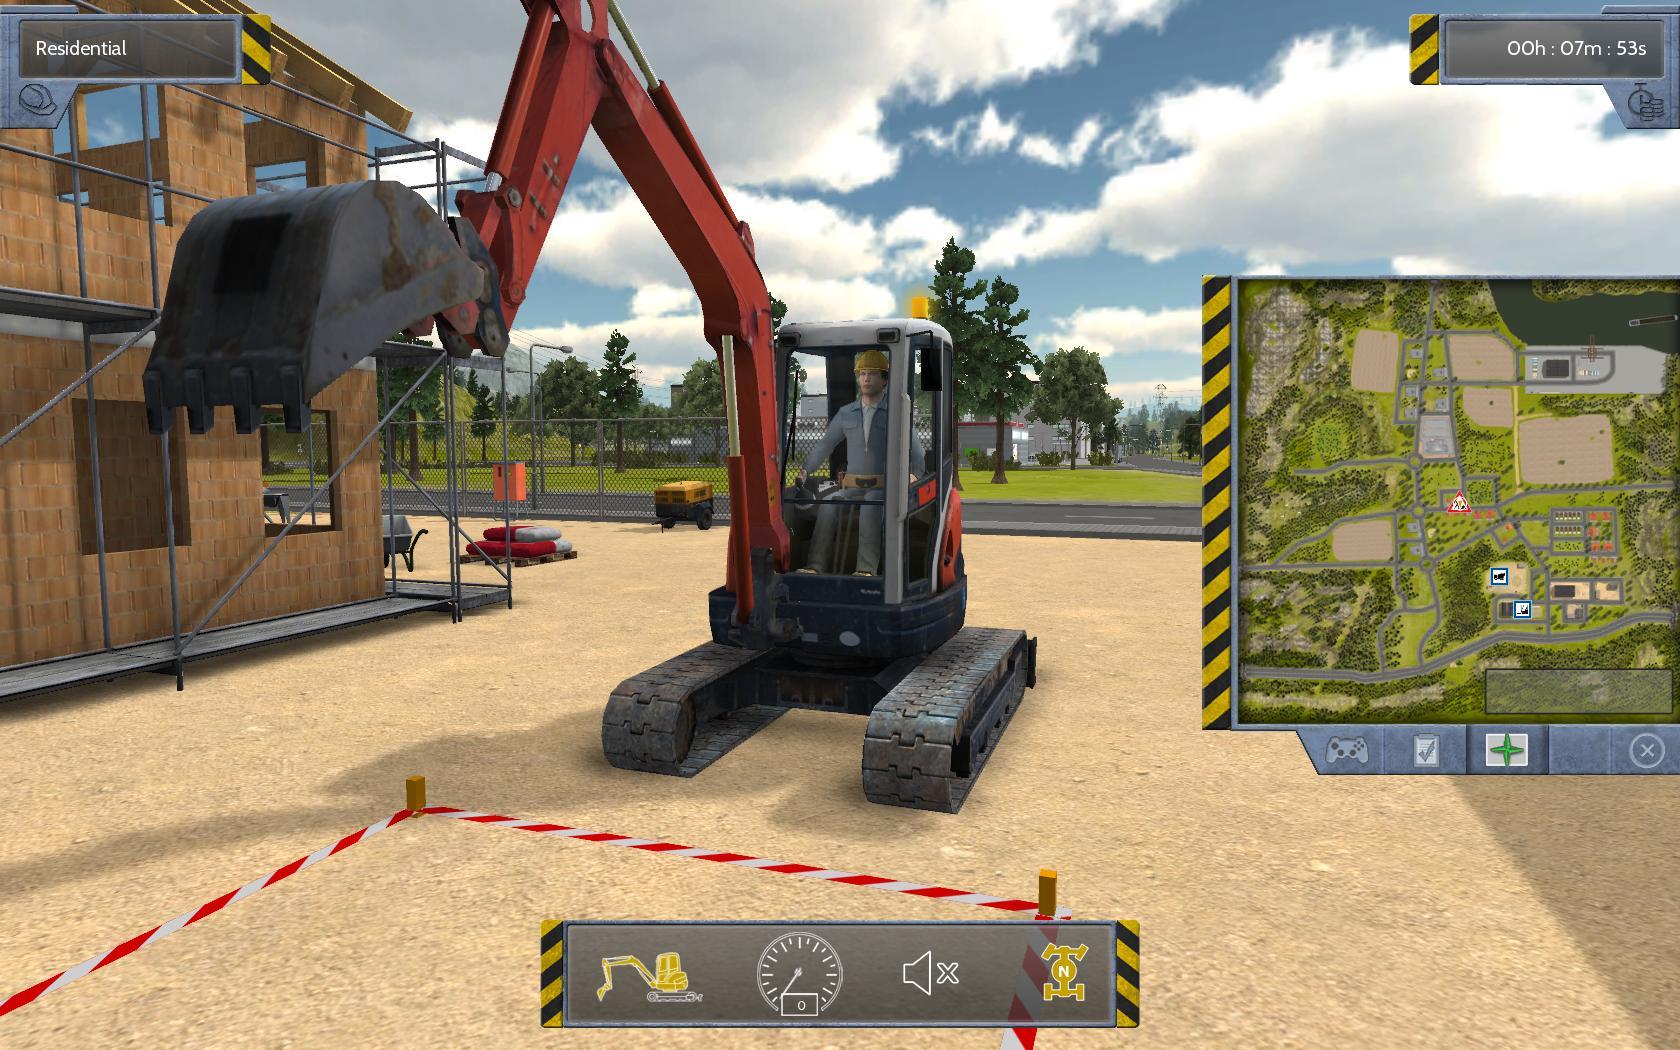 10 Best Construction Simulator Games - Planning and Consulting